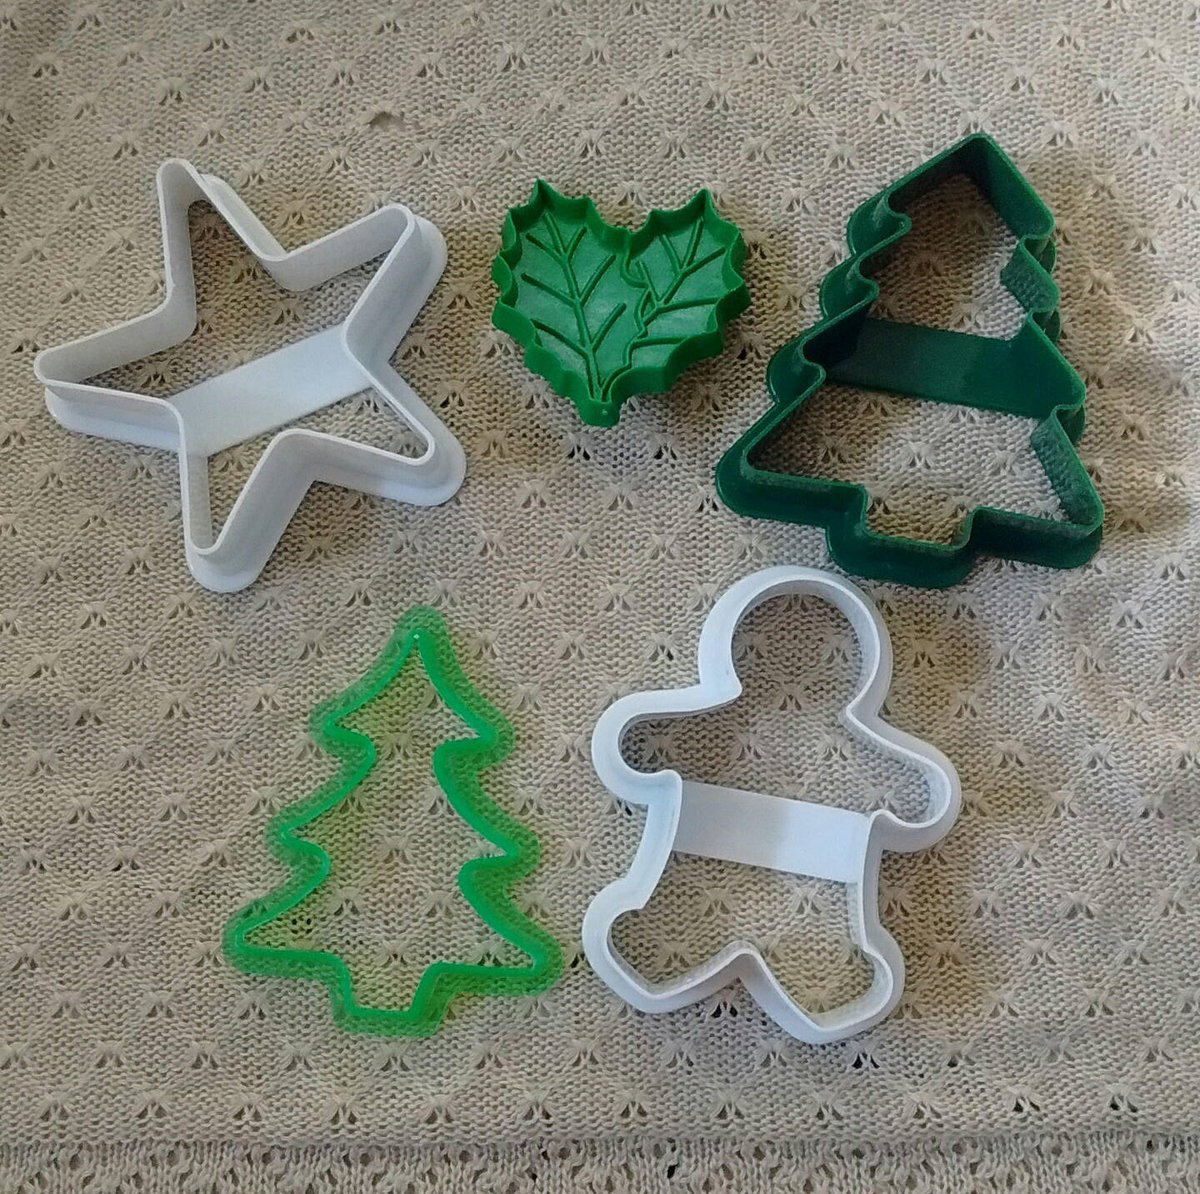 Vintage Christmas Cookie Cutter Collection, Tree, Gingerbread Man, Star, Holly by Hallmark, Acme, More Nice Lot  #baking #white #green #christmas #hallmark #cookiecutters #teamwwes #vintage #